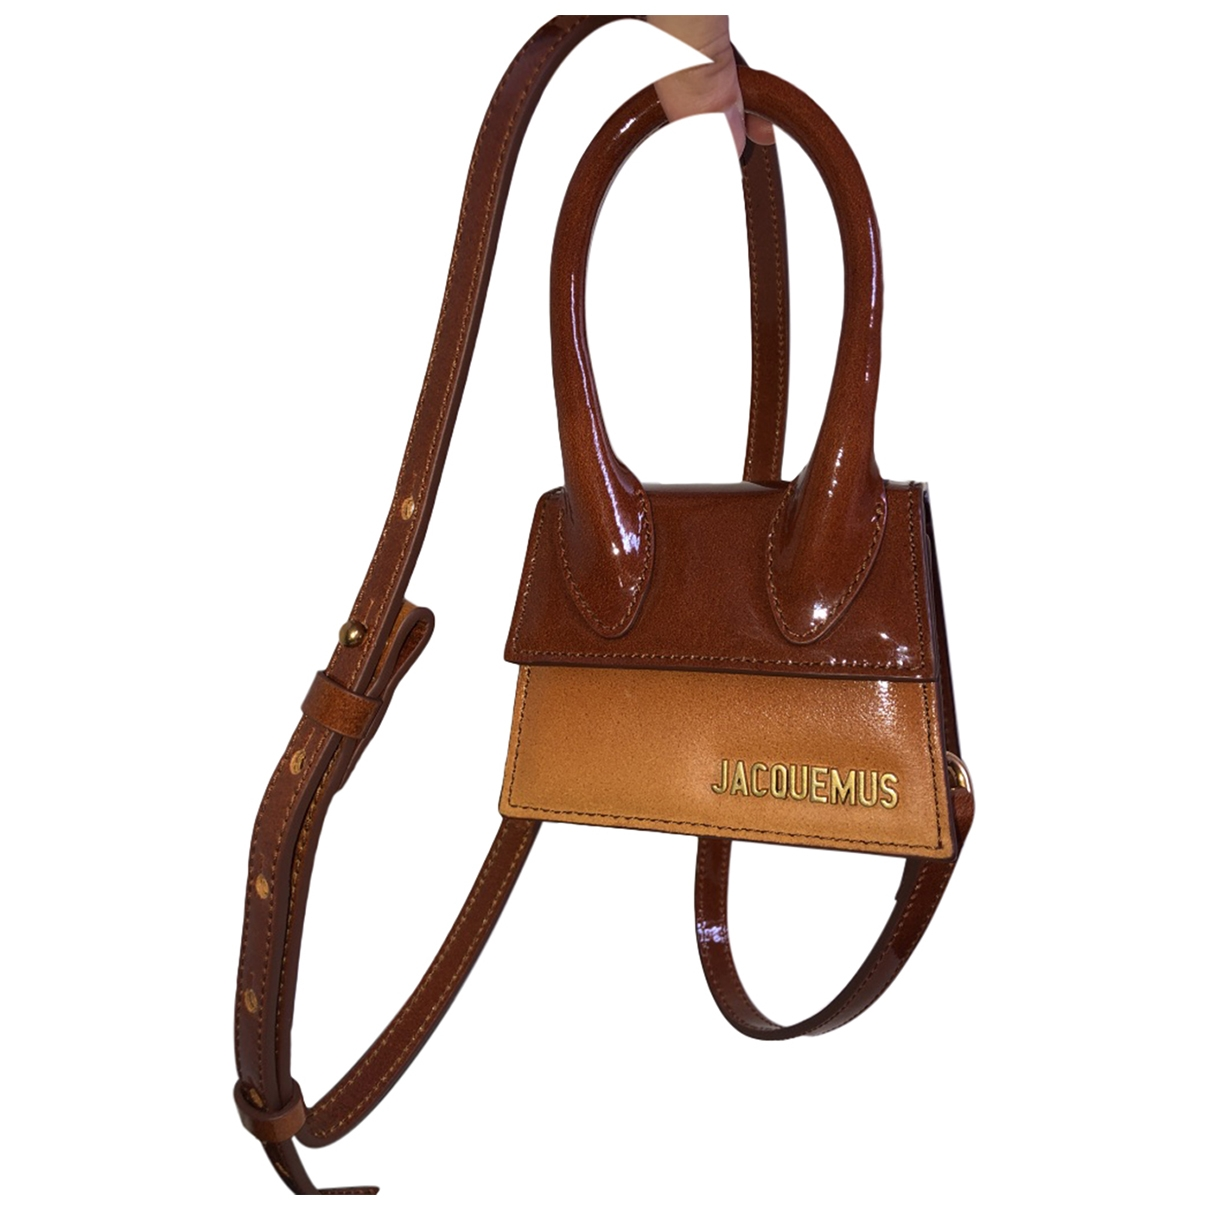 Jacquemus Chiquito Camel Patent leather handbag for Women \N